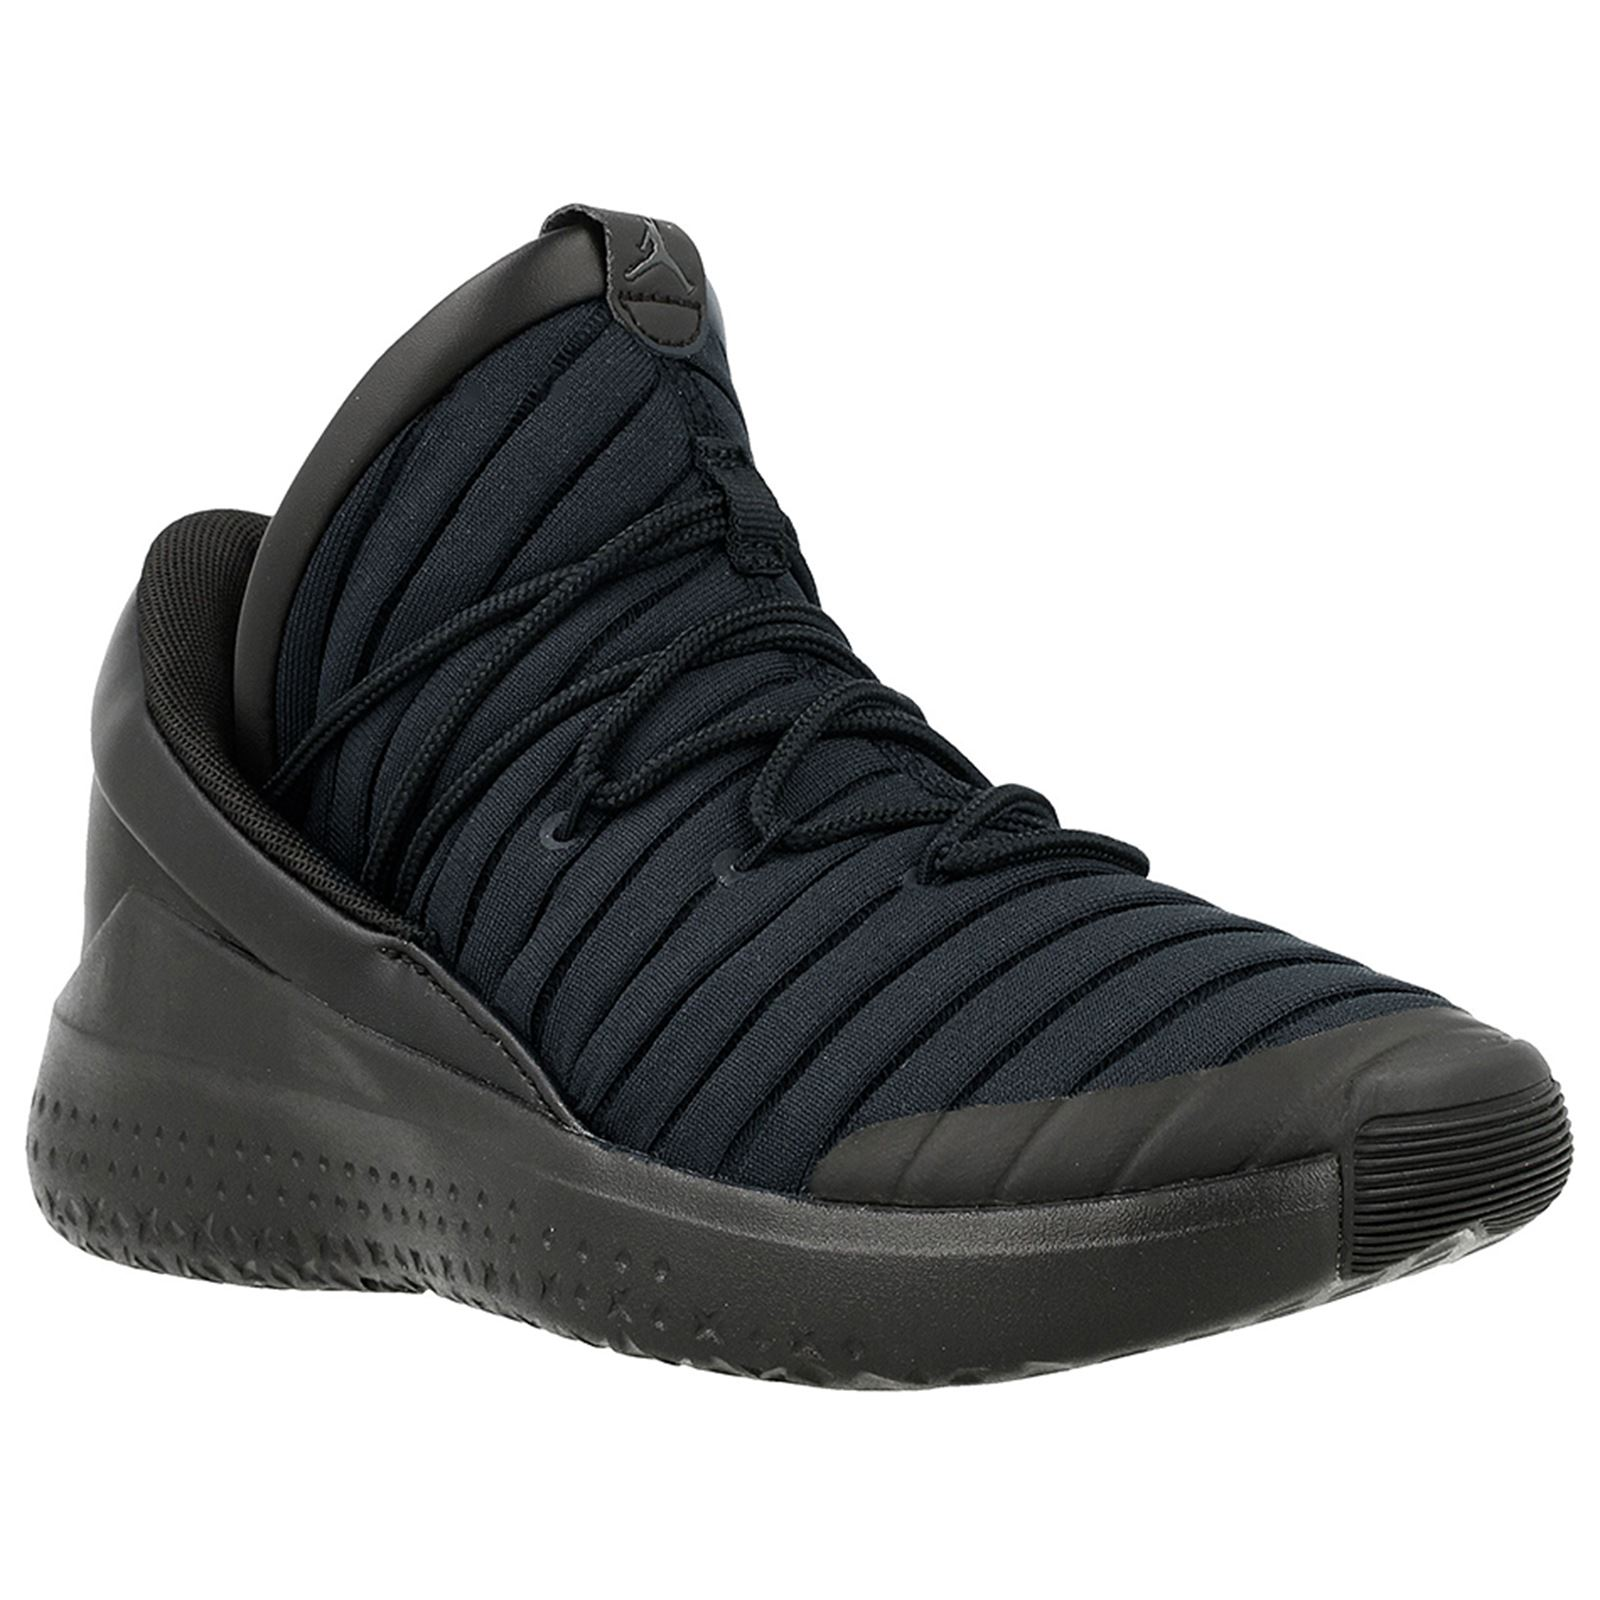 c971dd2b0c4cc6 Details about Nike Jordan Flight Luxe Black Anthracite Youth Lace-up  Low-Top Sneakers Trainers